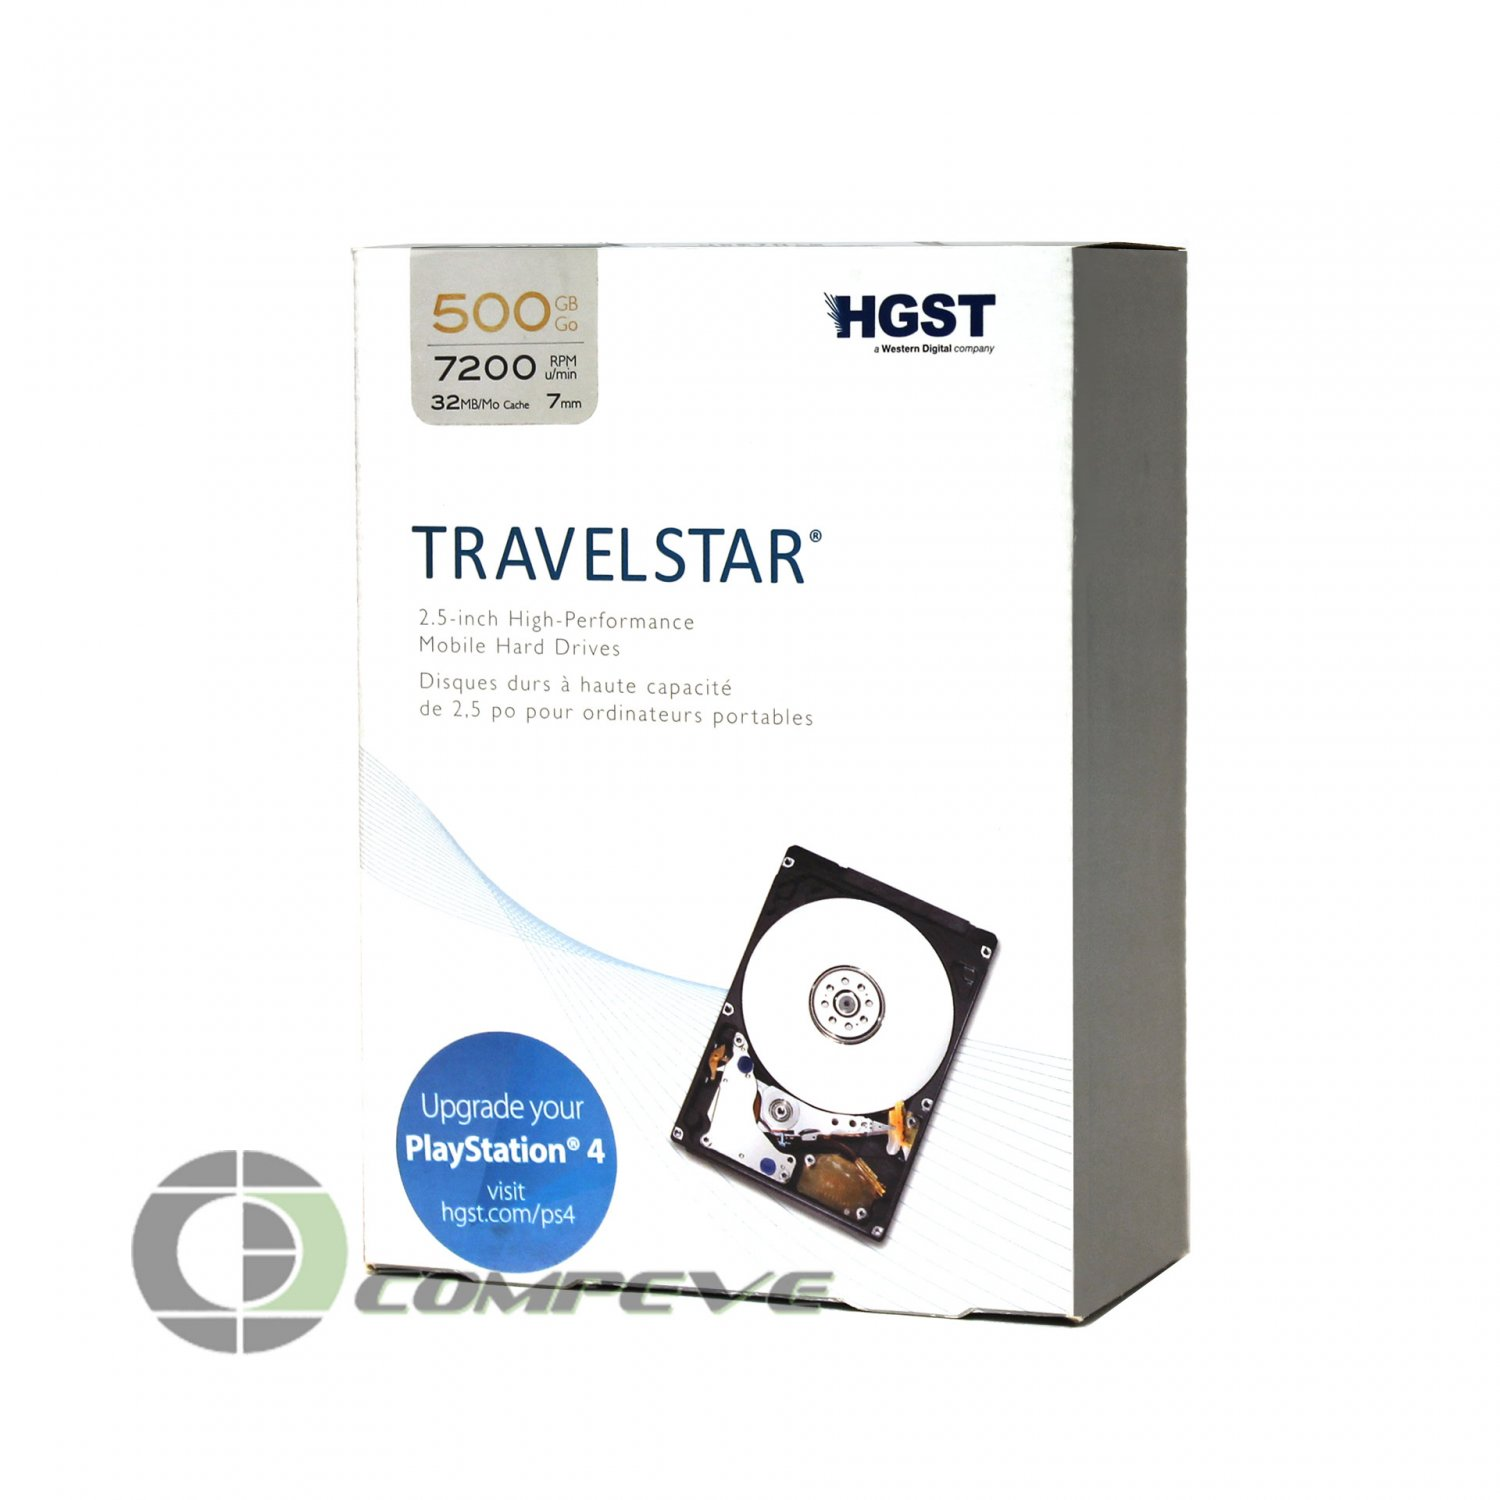 "HGST Travelstar 500GB HTS725050A7E630 0J26005 7200RPM 2.5"" Notebook Hard Drive"